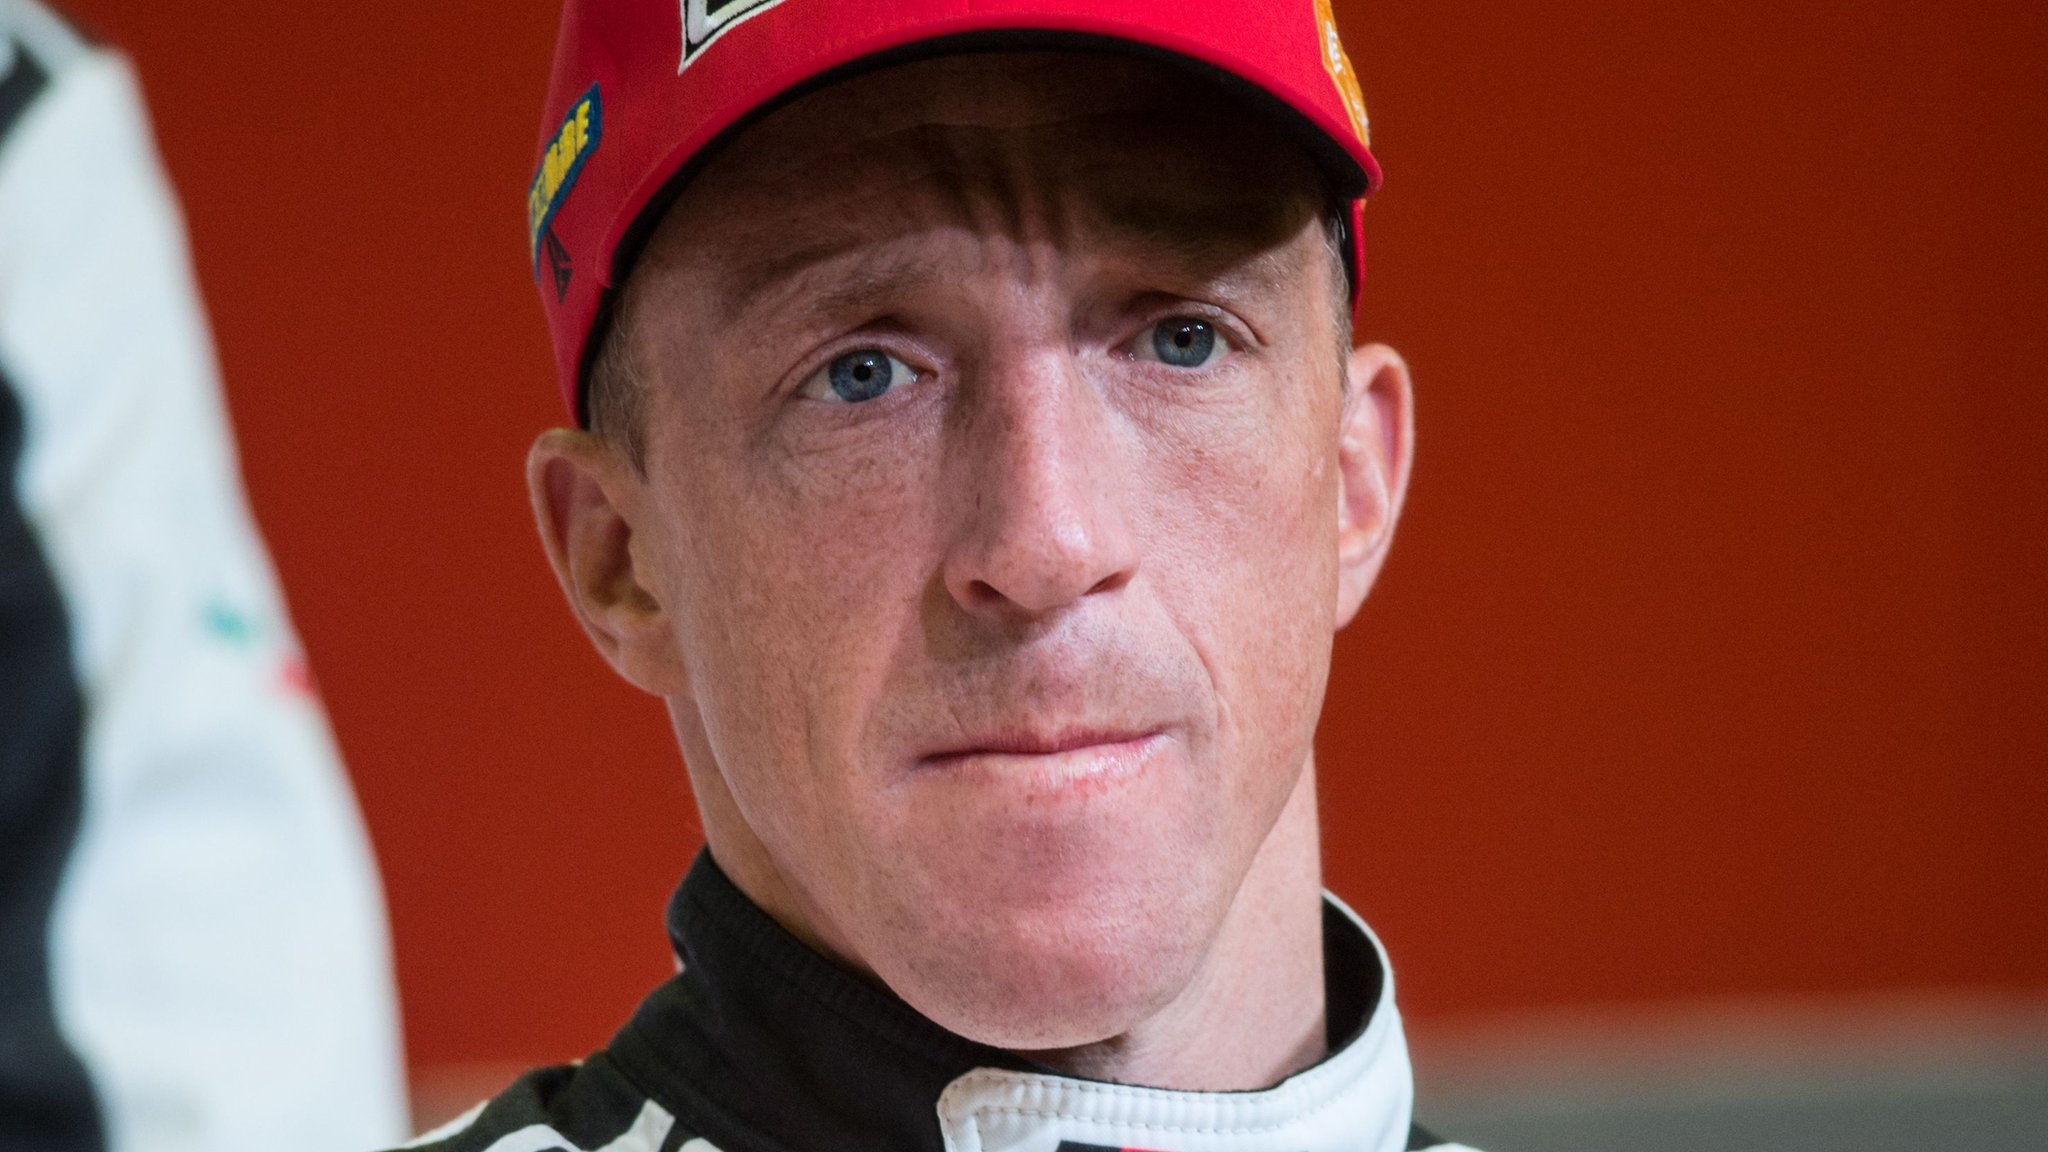 WRC: Kris Meeke in eighth spot after opening four stages at Rally Sweden